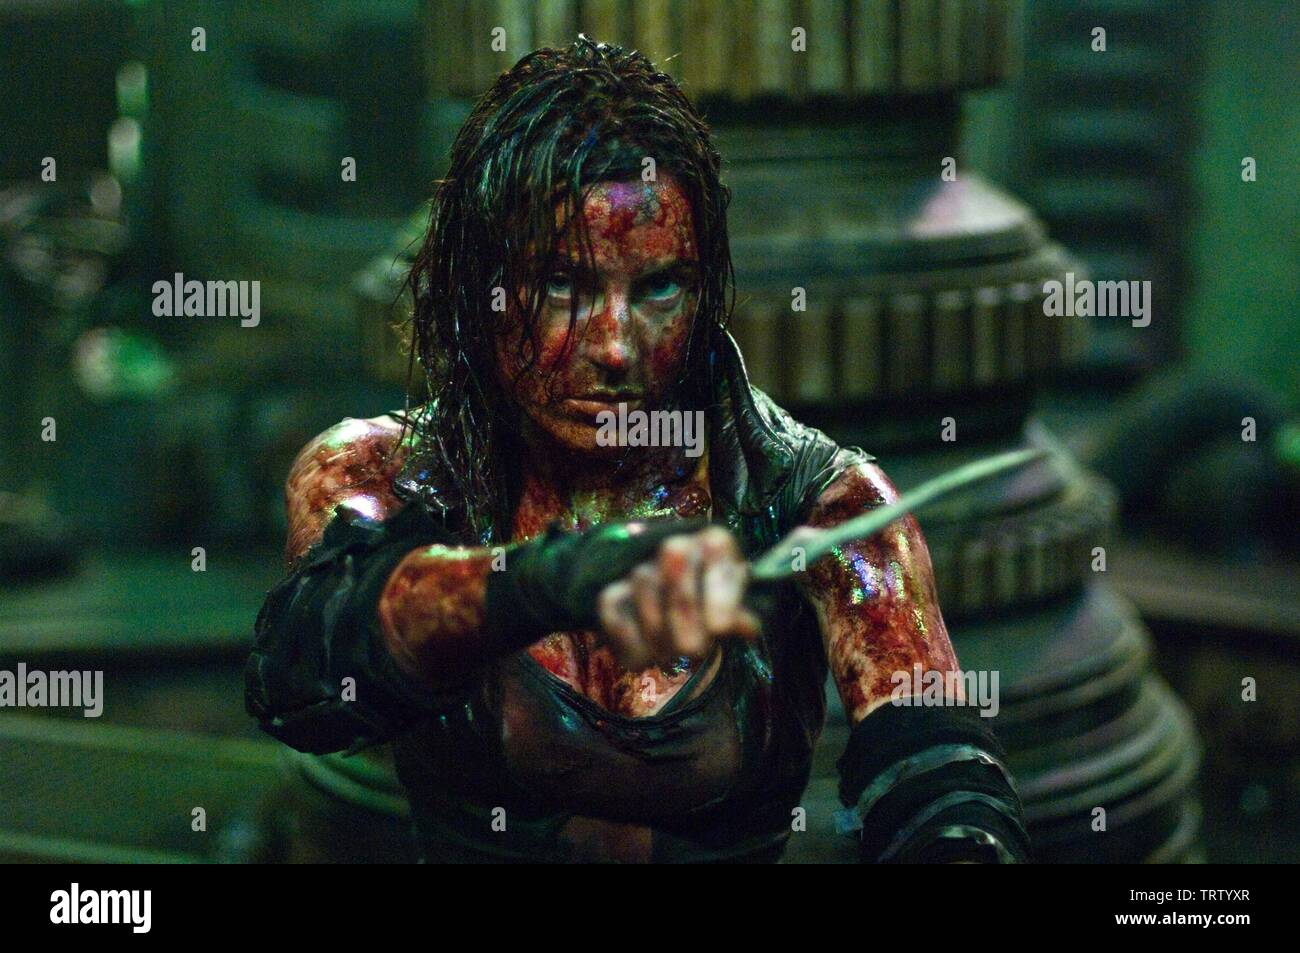 ANTJE TRAUE in PANDORUM (2009). Copyright: Editorial use only. No merchandising or book covers. This is a publicly distributed handout. Access rights only, no license of copyright provided. Only to be reproduced in conjunction with promotion of this film. Credit: CONSTANTIN FILM / Album - Stock Image